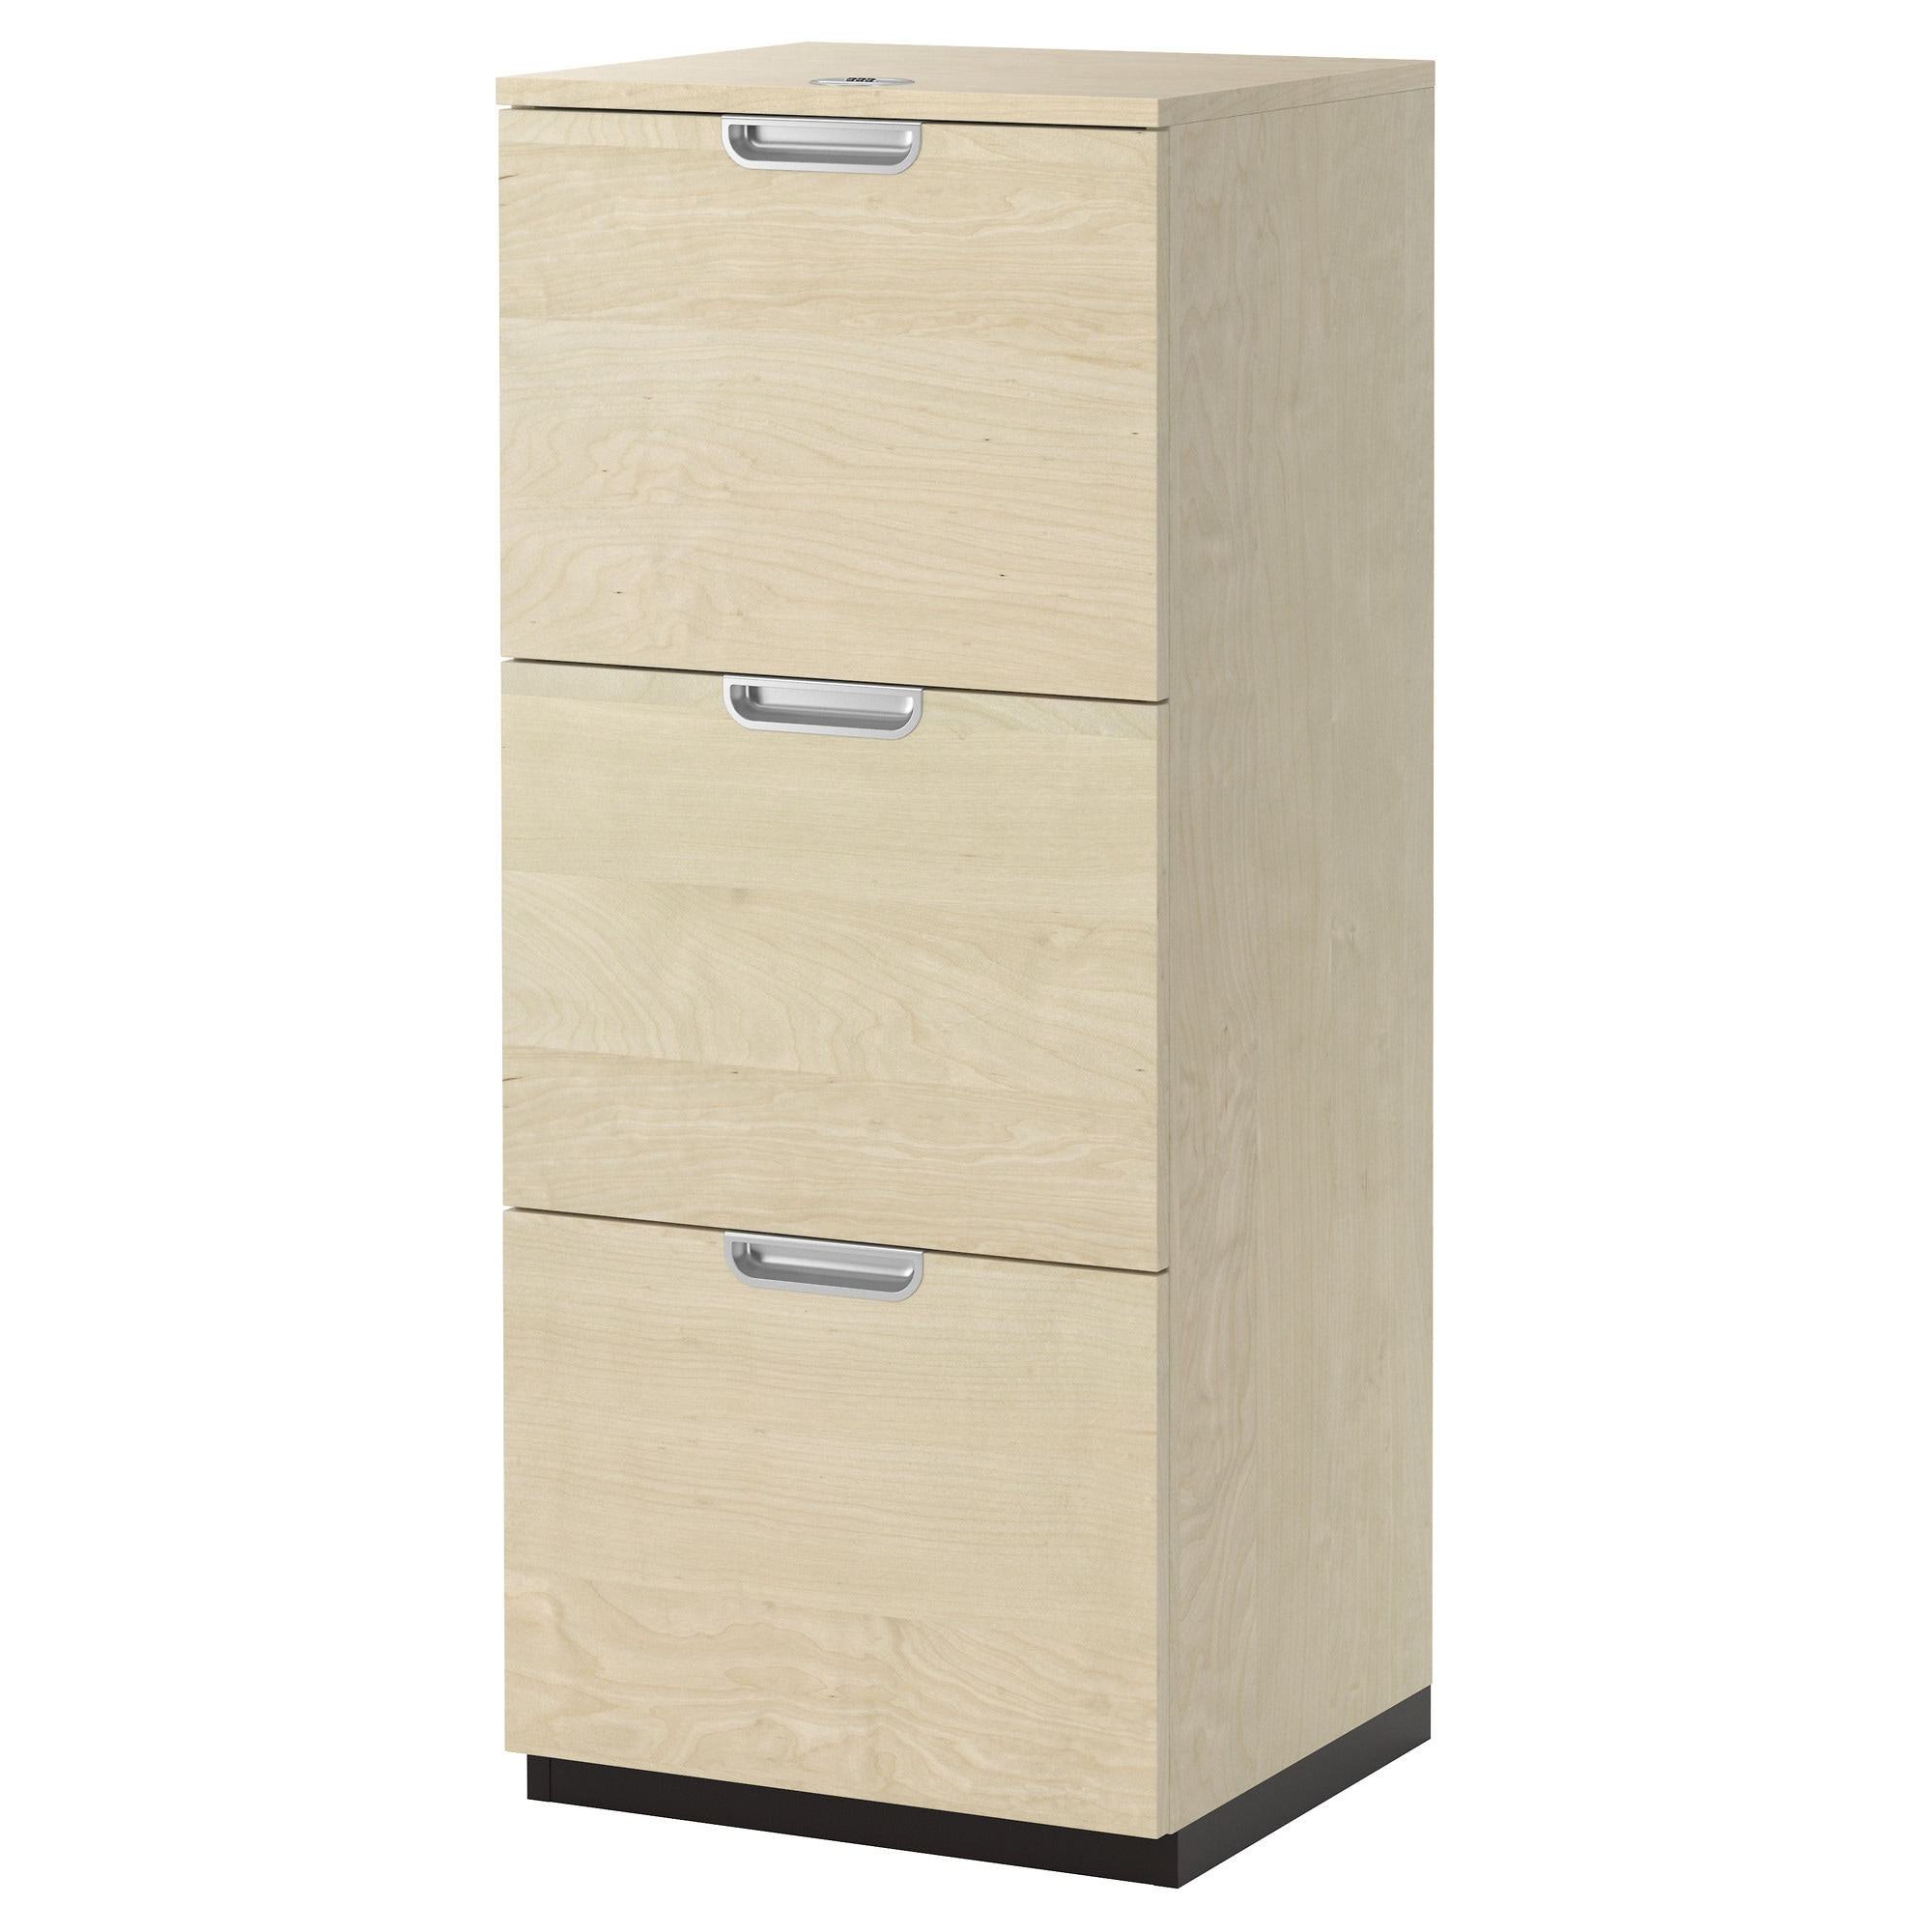 office storage cabinets ikea. office storage cabinets ikea a